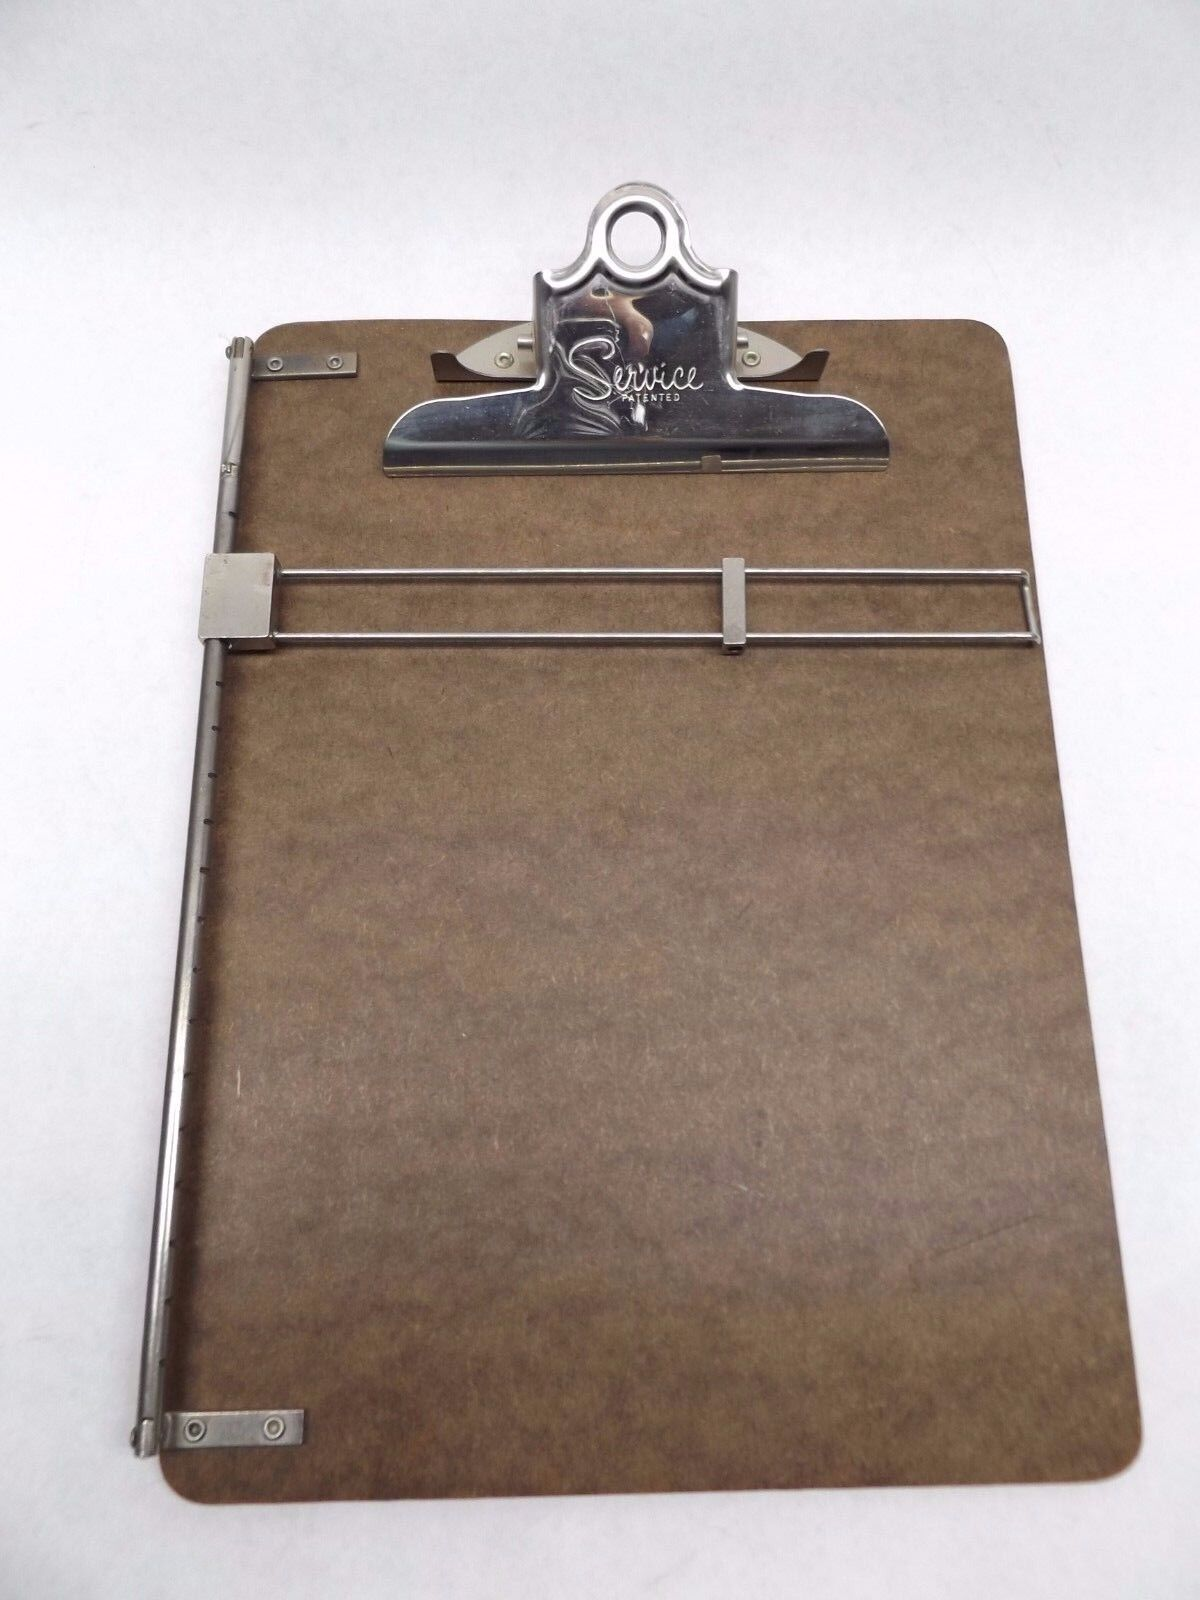 VINTAGE MARKS WRITING GUIDE CLIPBOARD FROM AMERICAN FOUNDATION FOR THE BLIND